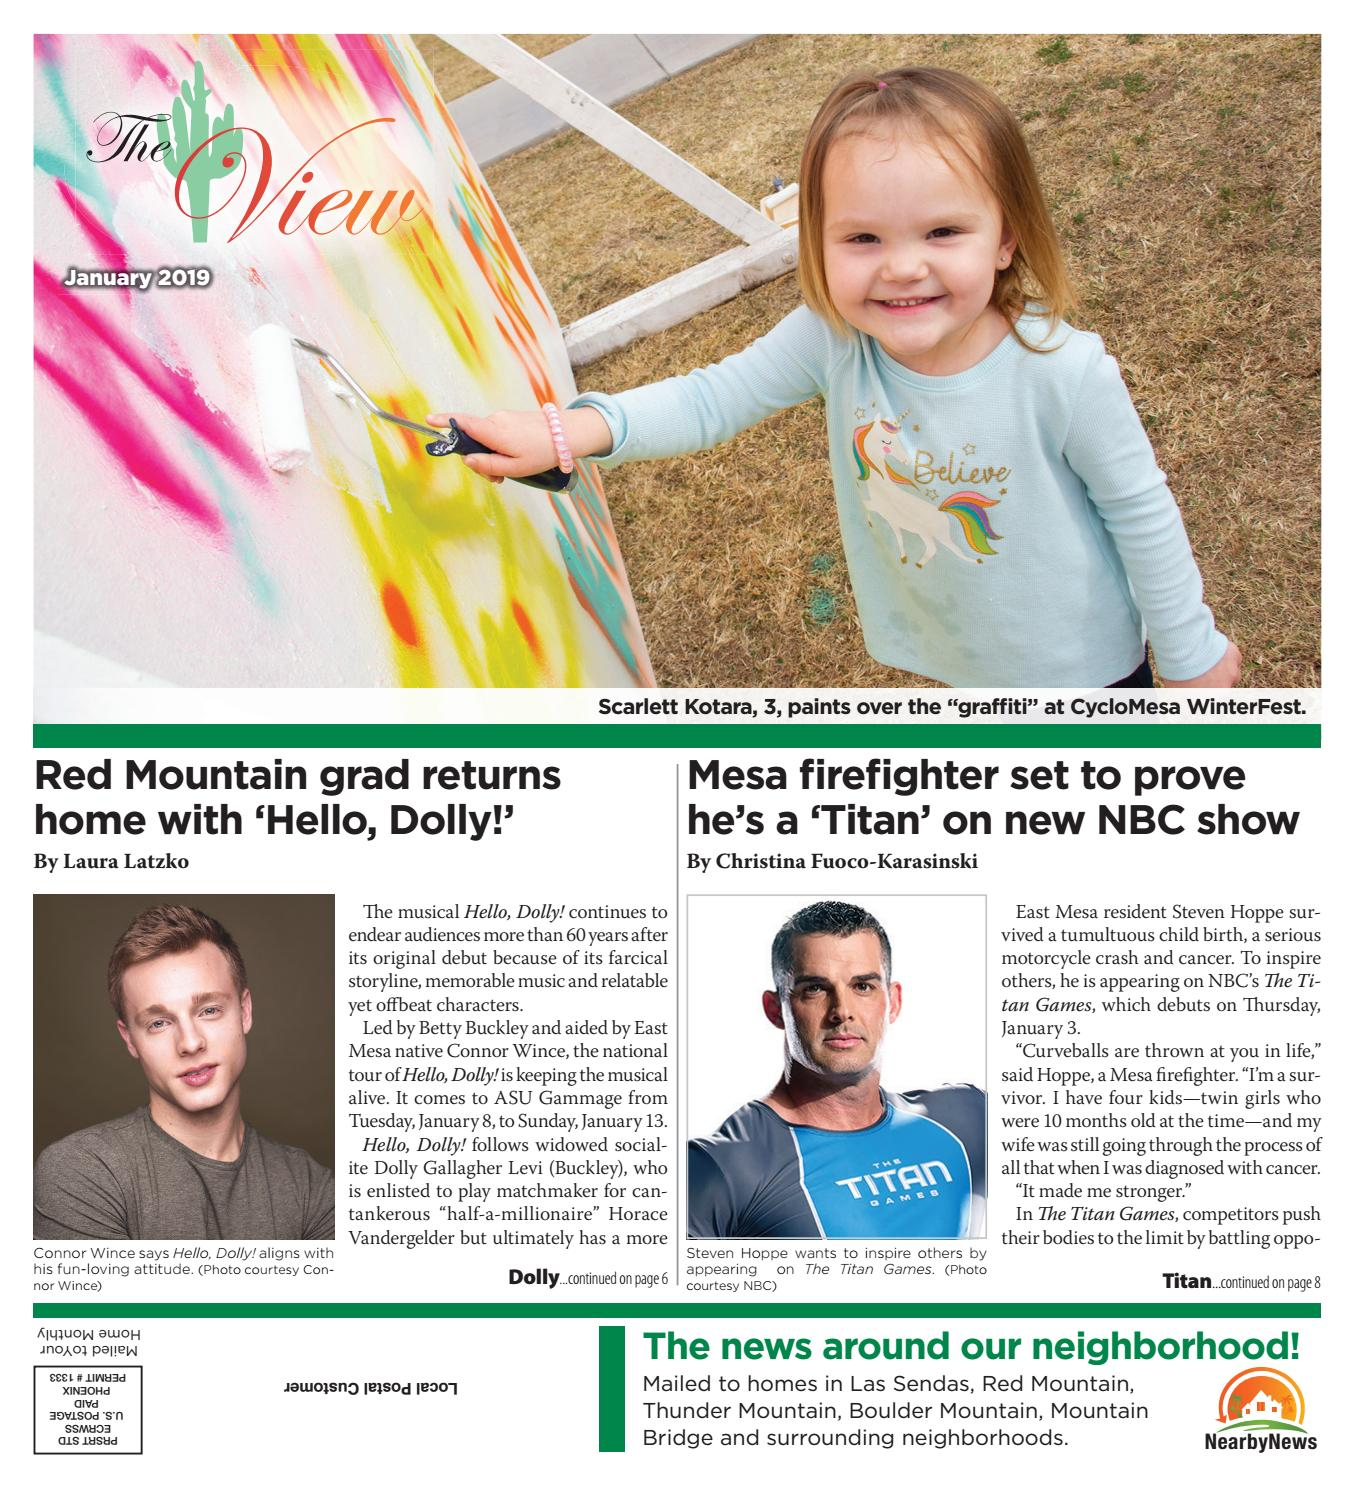 The View - January 2019 by Times Media Group - issuu